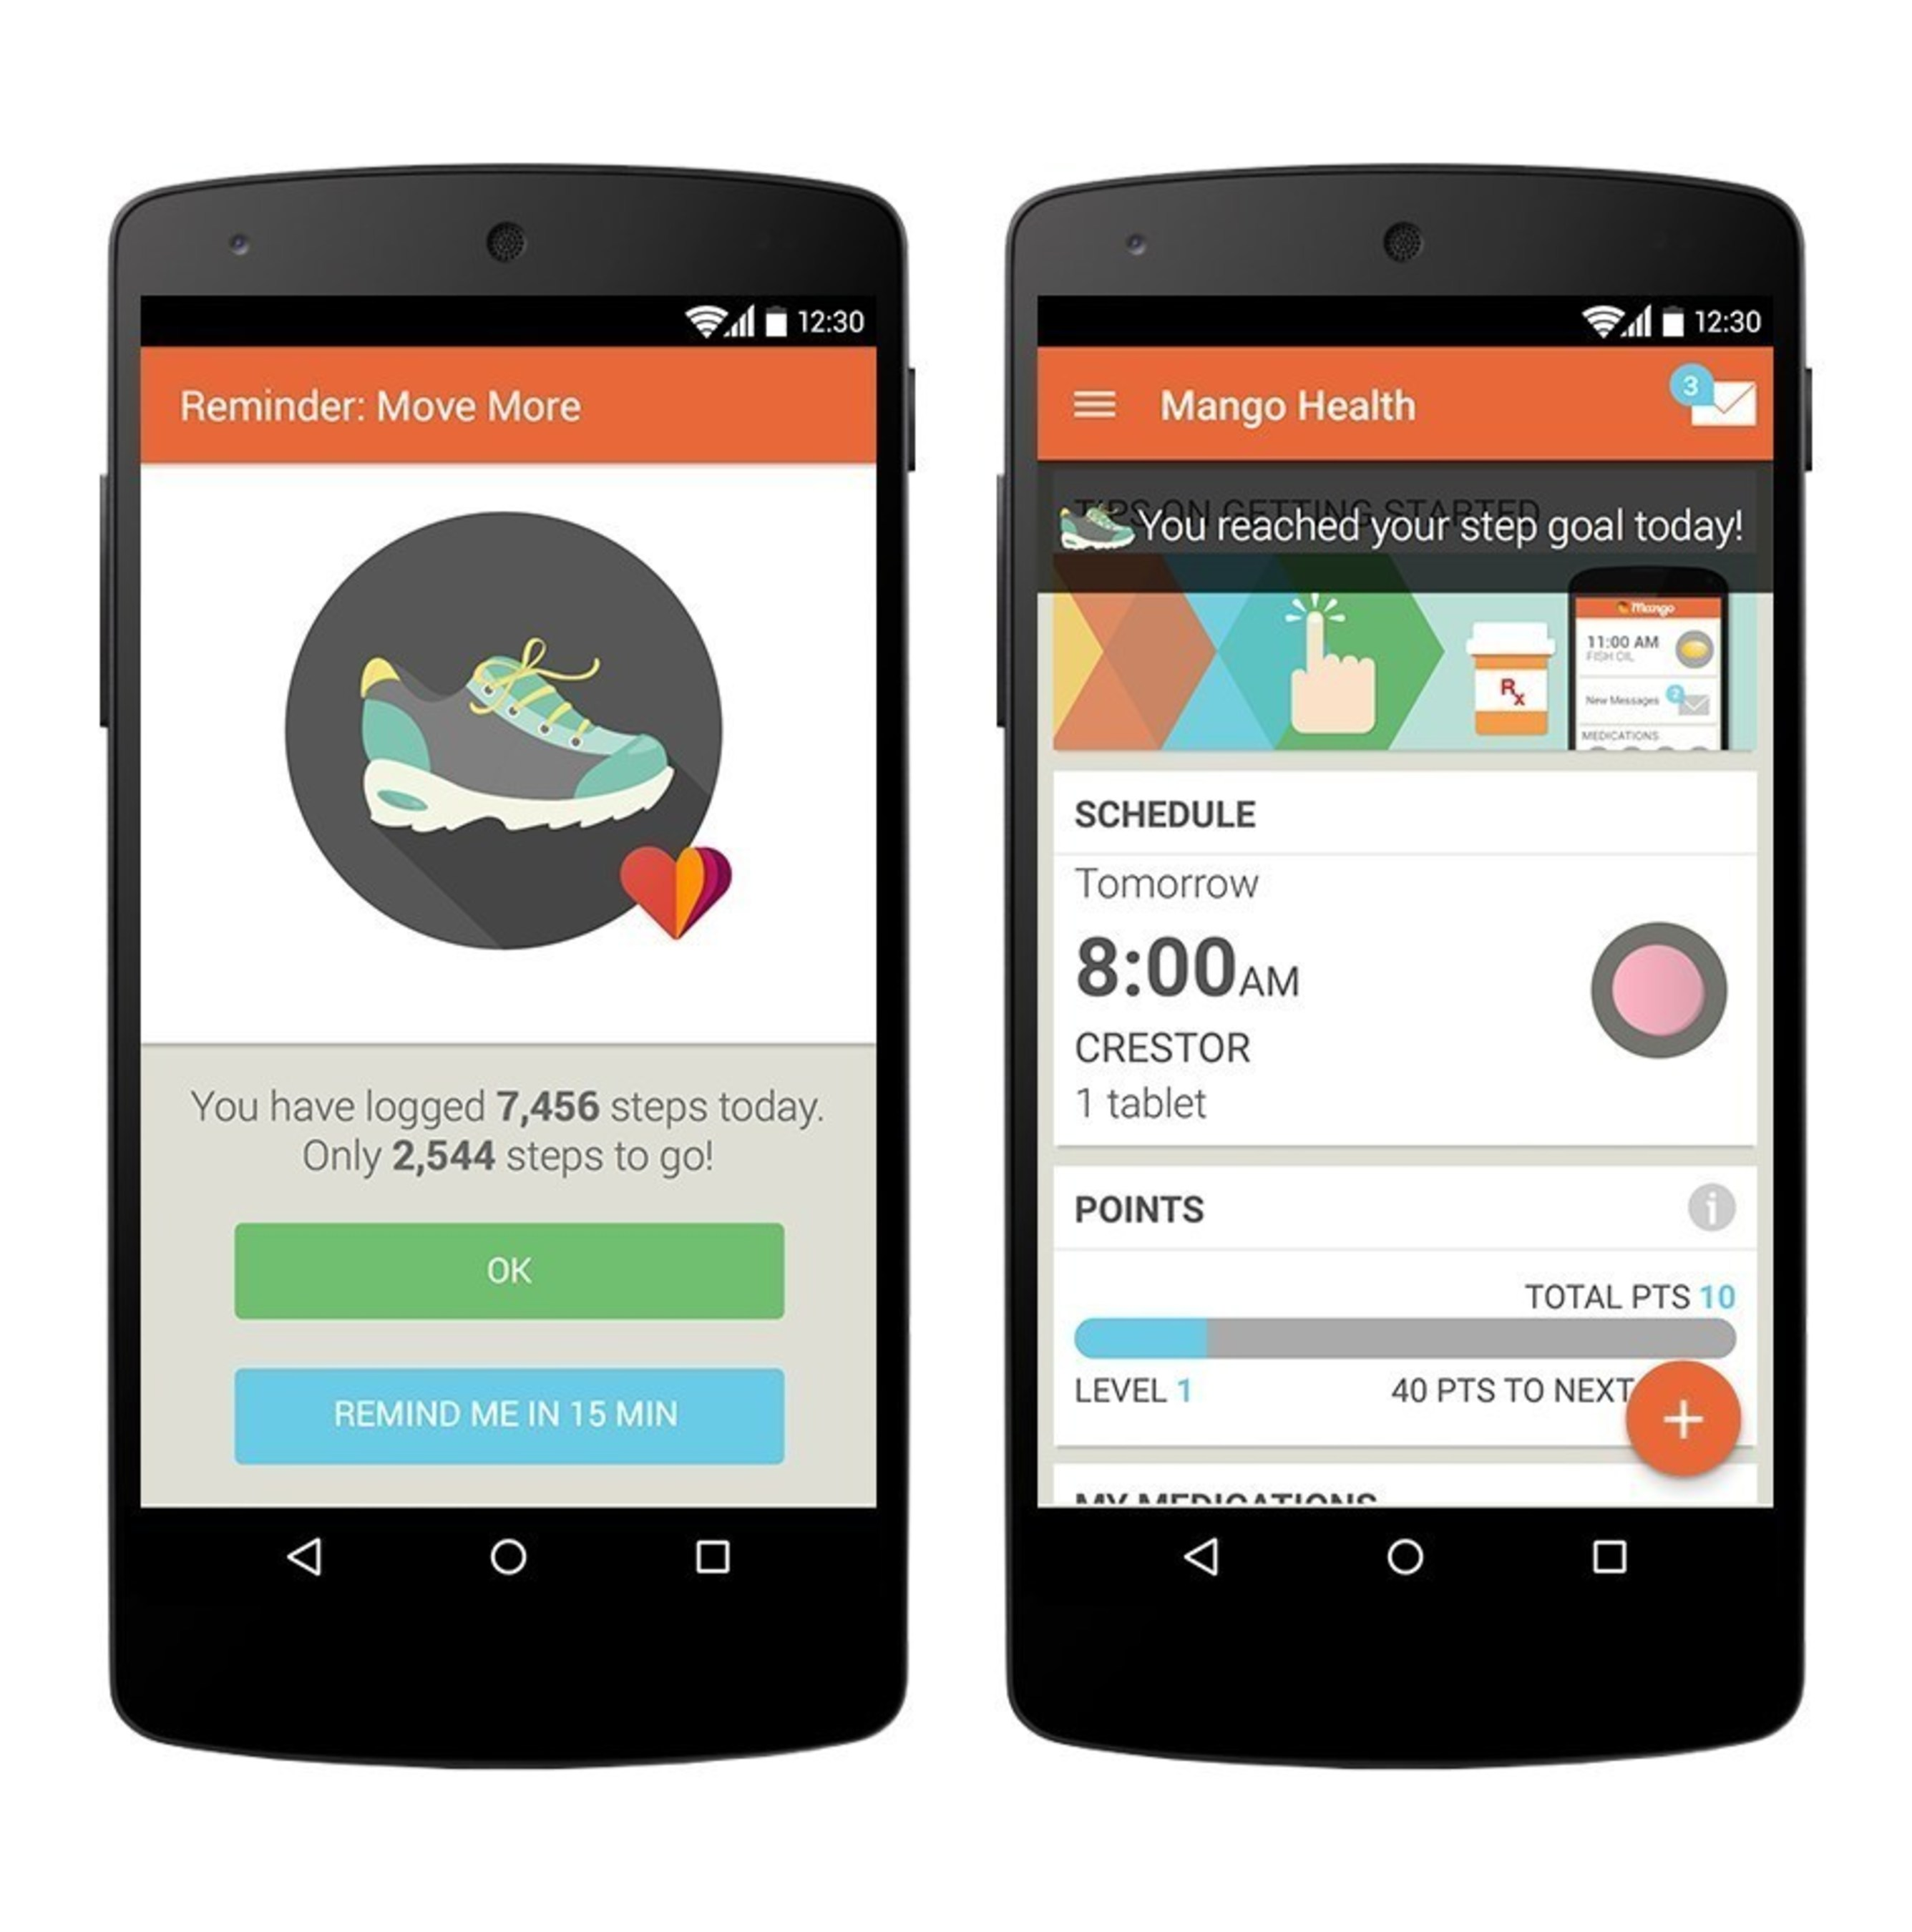 As part of the new Mango Health Habit features, the company is announcing an integration with the Google Fit health tracking platform. As announced today at the Google I/O developer conference, Google Fit members on select Android devices will be able to access their walking and running activity in the Mango Health Android application. Daily steps walked activity will be integrated into the Mango Health points tracking and reward systems, providing an engaging experience around building and maintaining healthy habits.